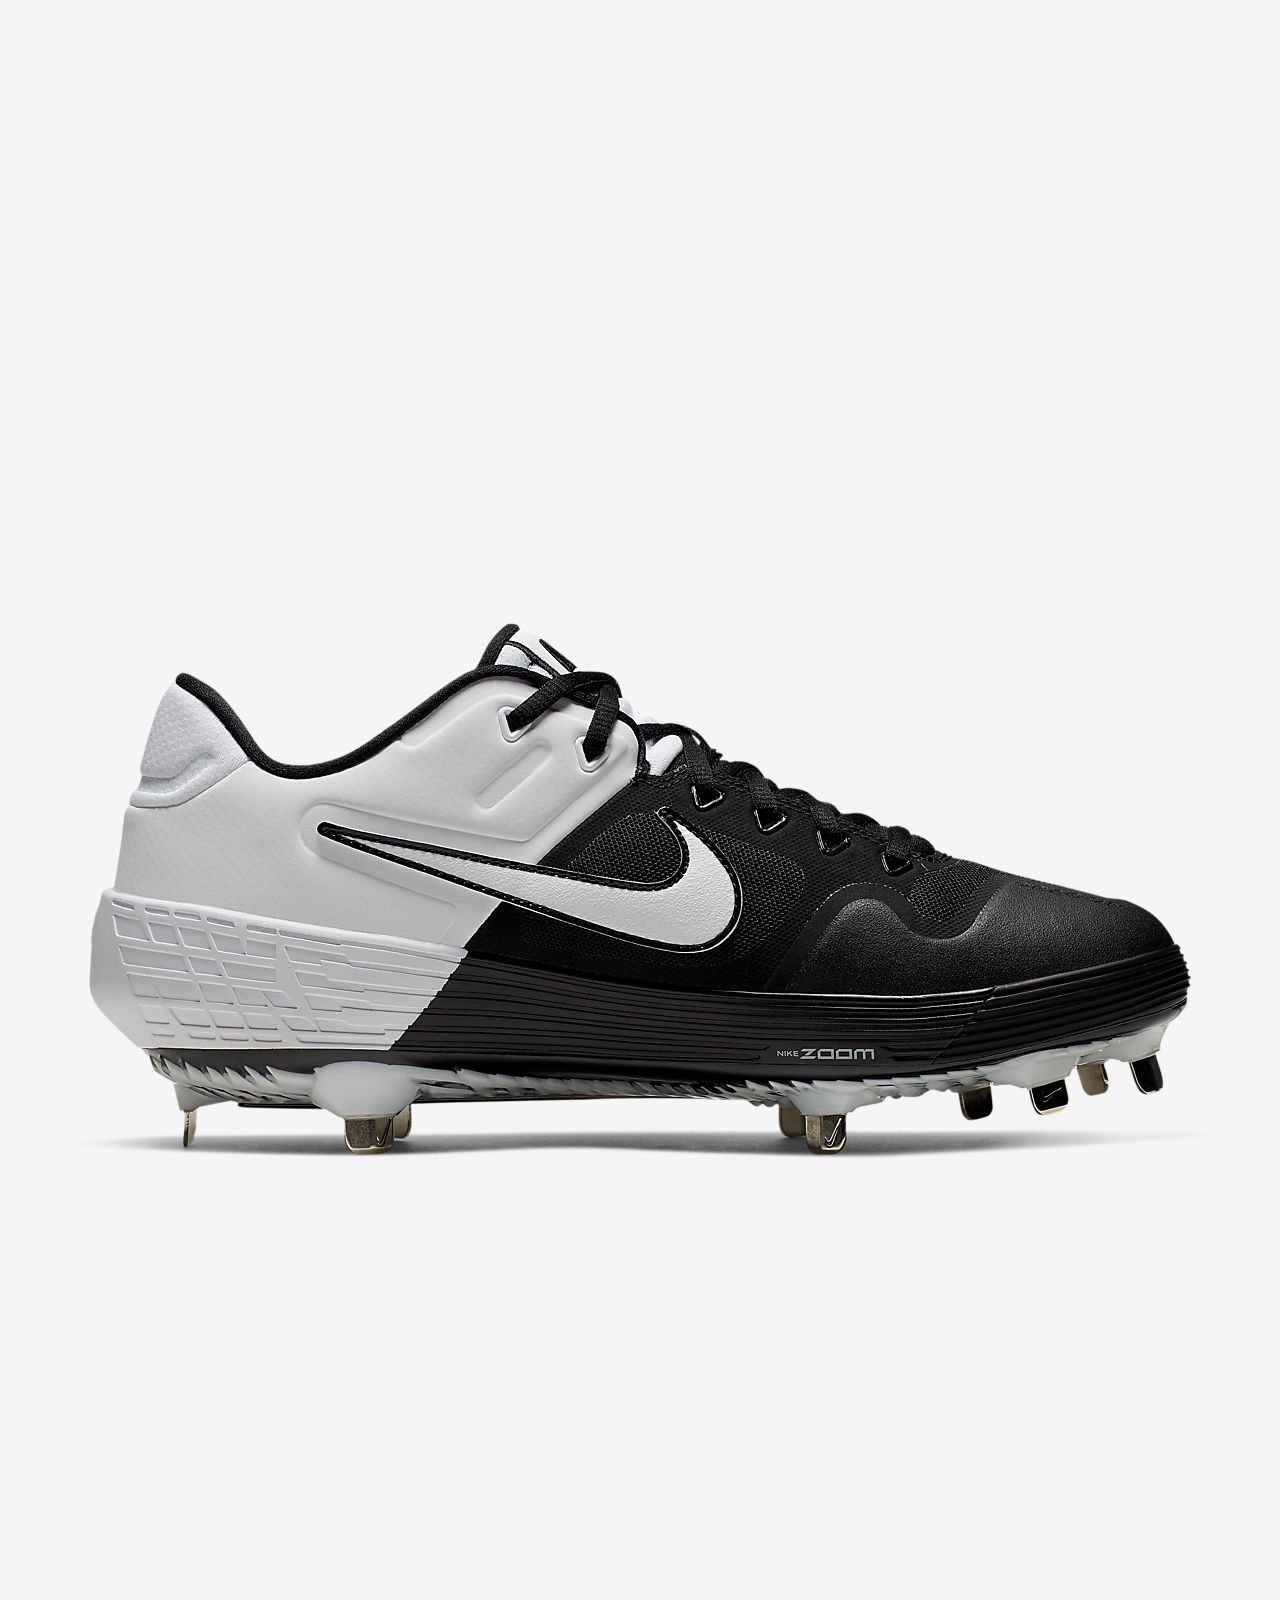 quality design e0239 8c174 Nike Alpha Huarache Elite 2 Low Baseball Cleat